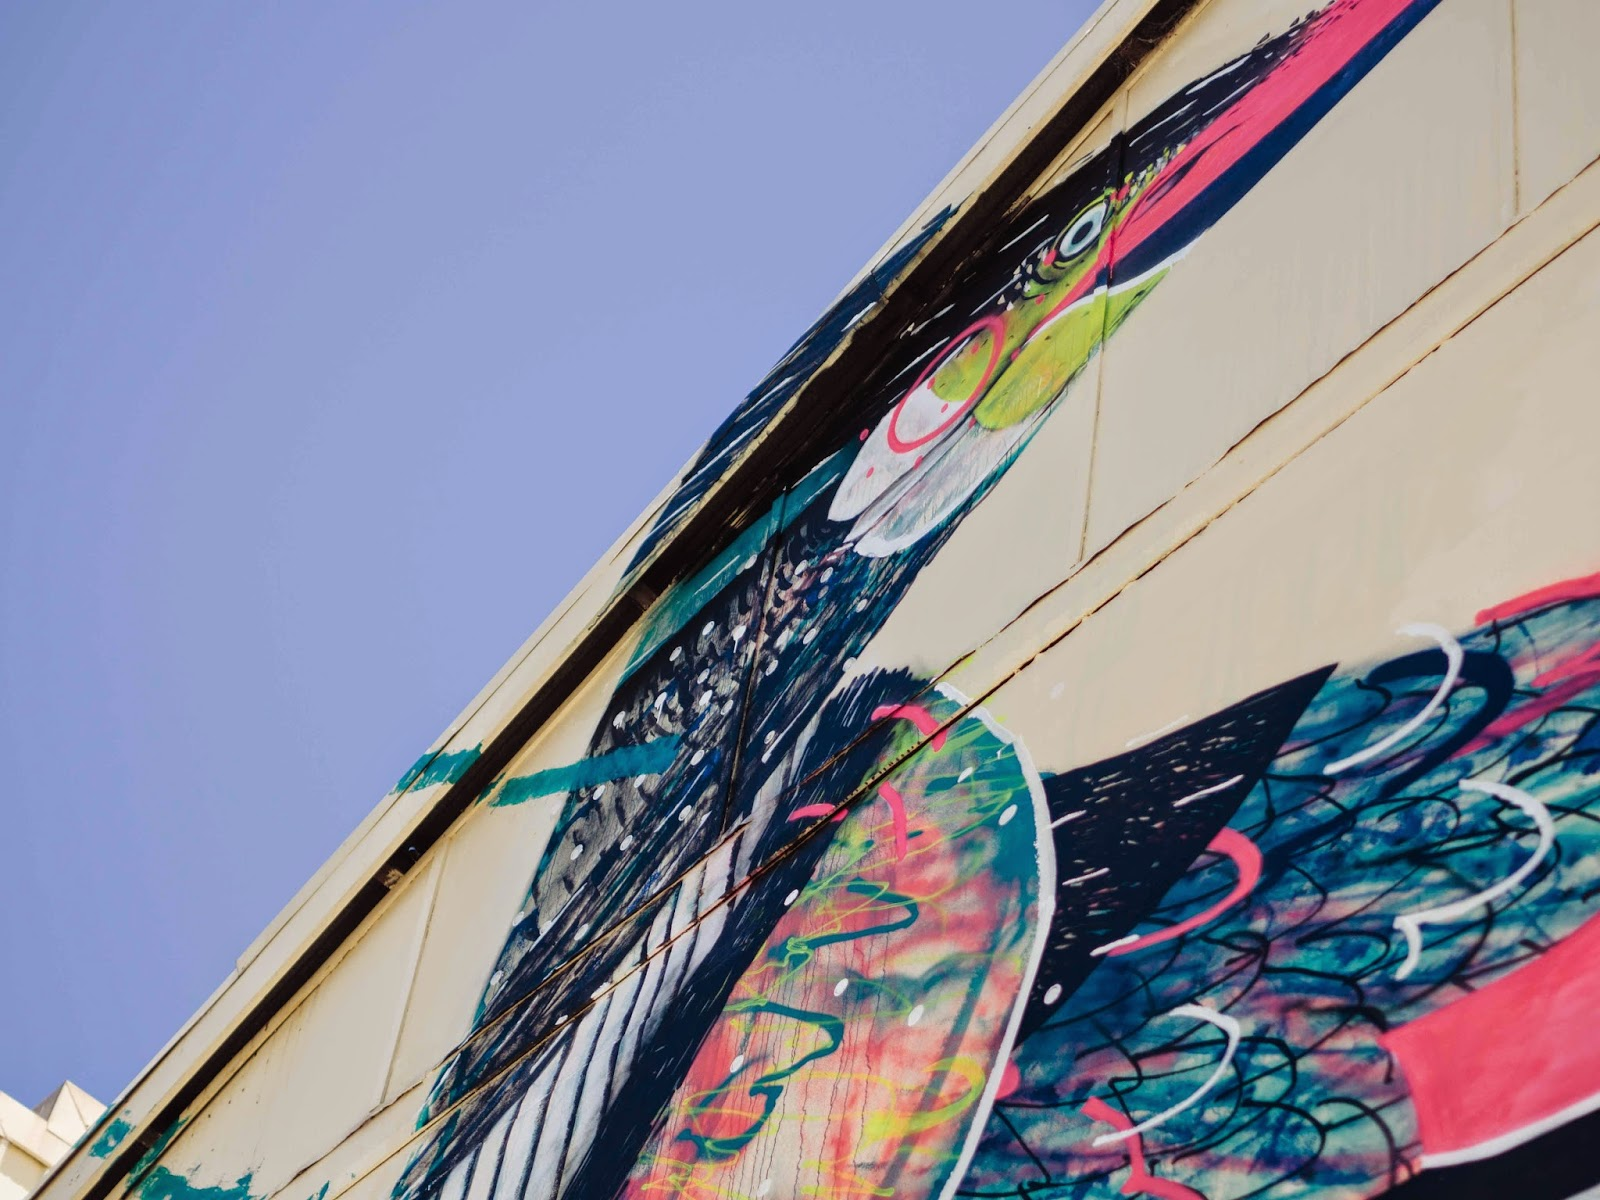 twoone-new-mural-for-re-discover-festival-03